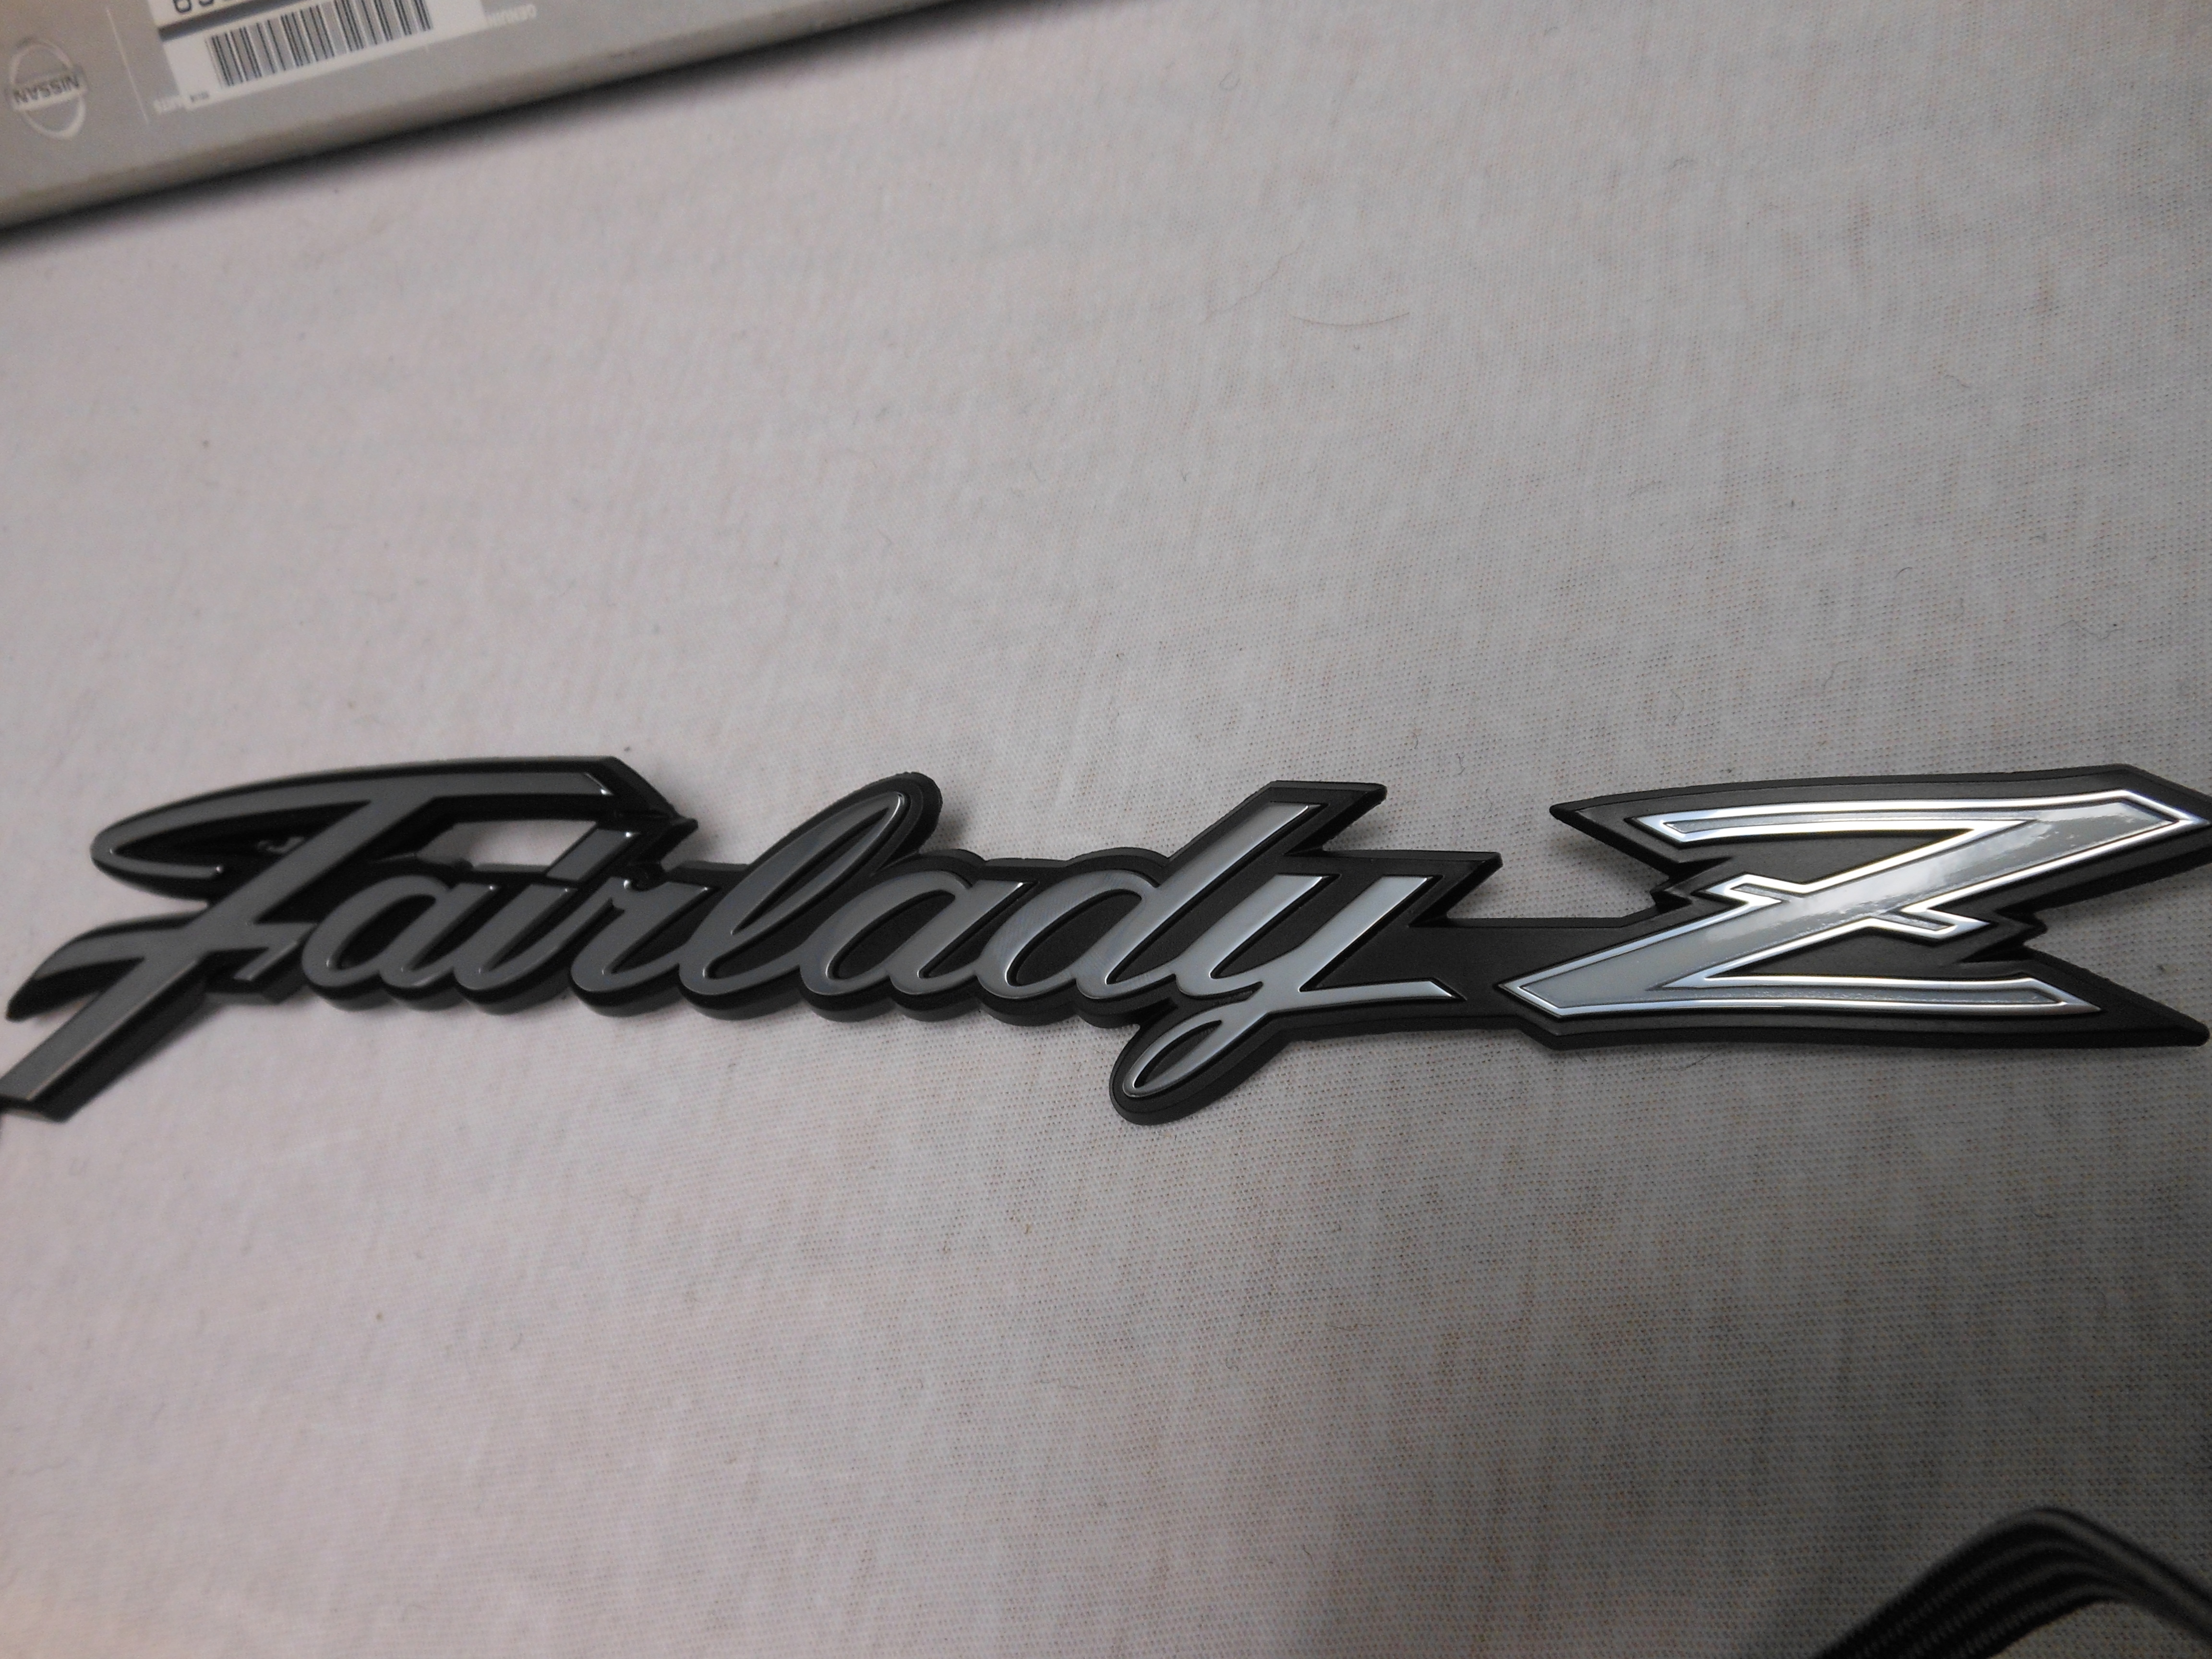 2014 Nissan Quest For Sale >> JDM Datsun Fairlady Z Emblem (metal) - Nissan Race Shop